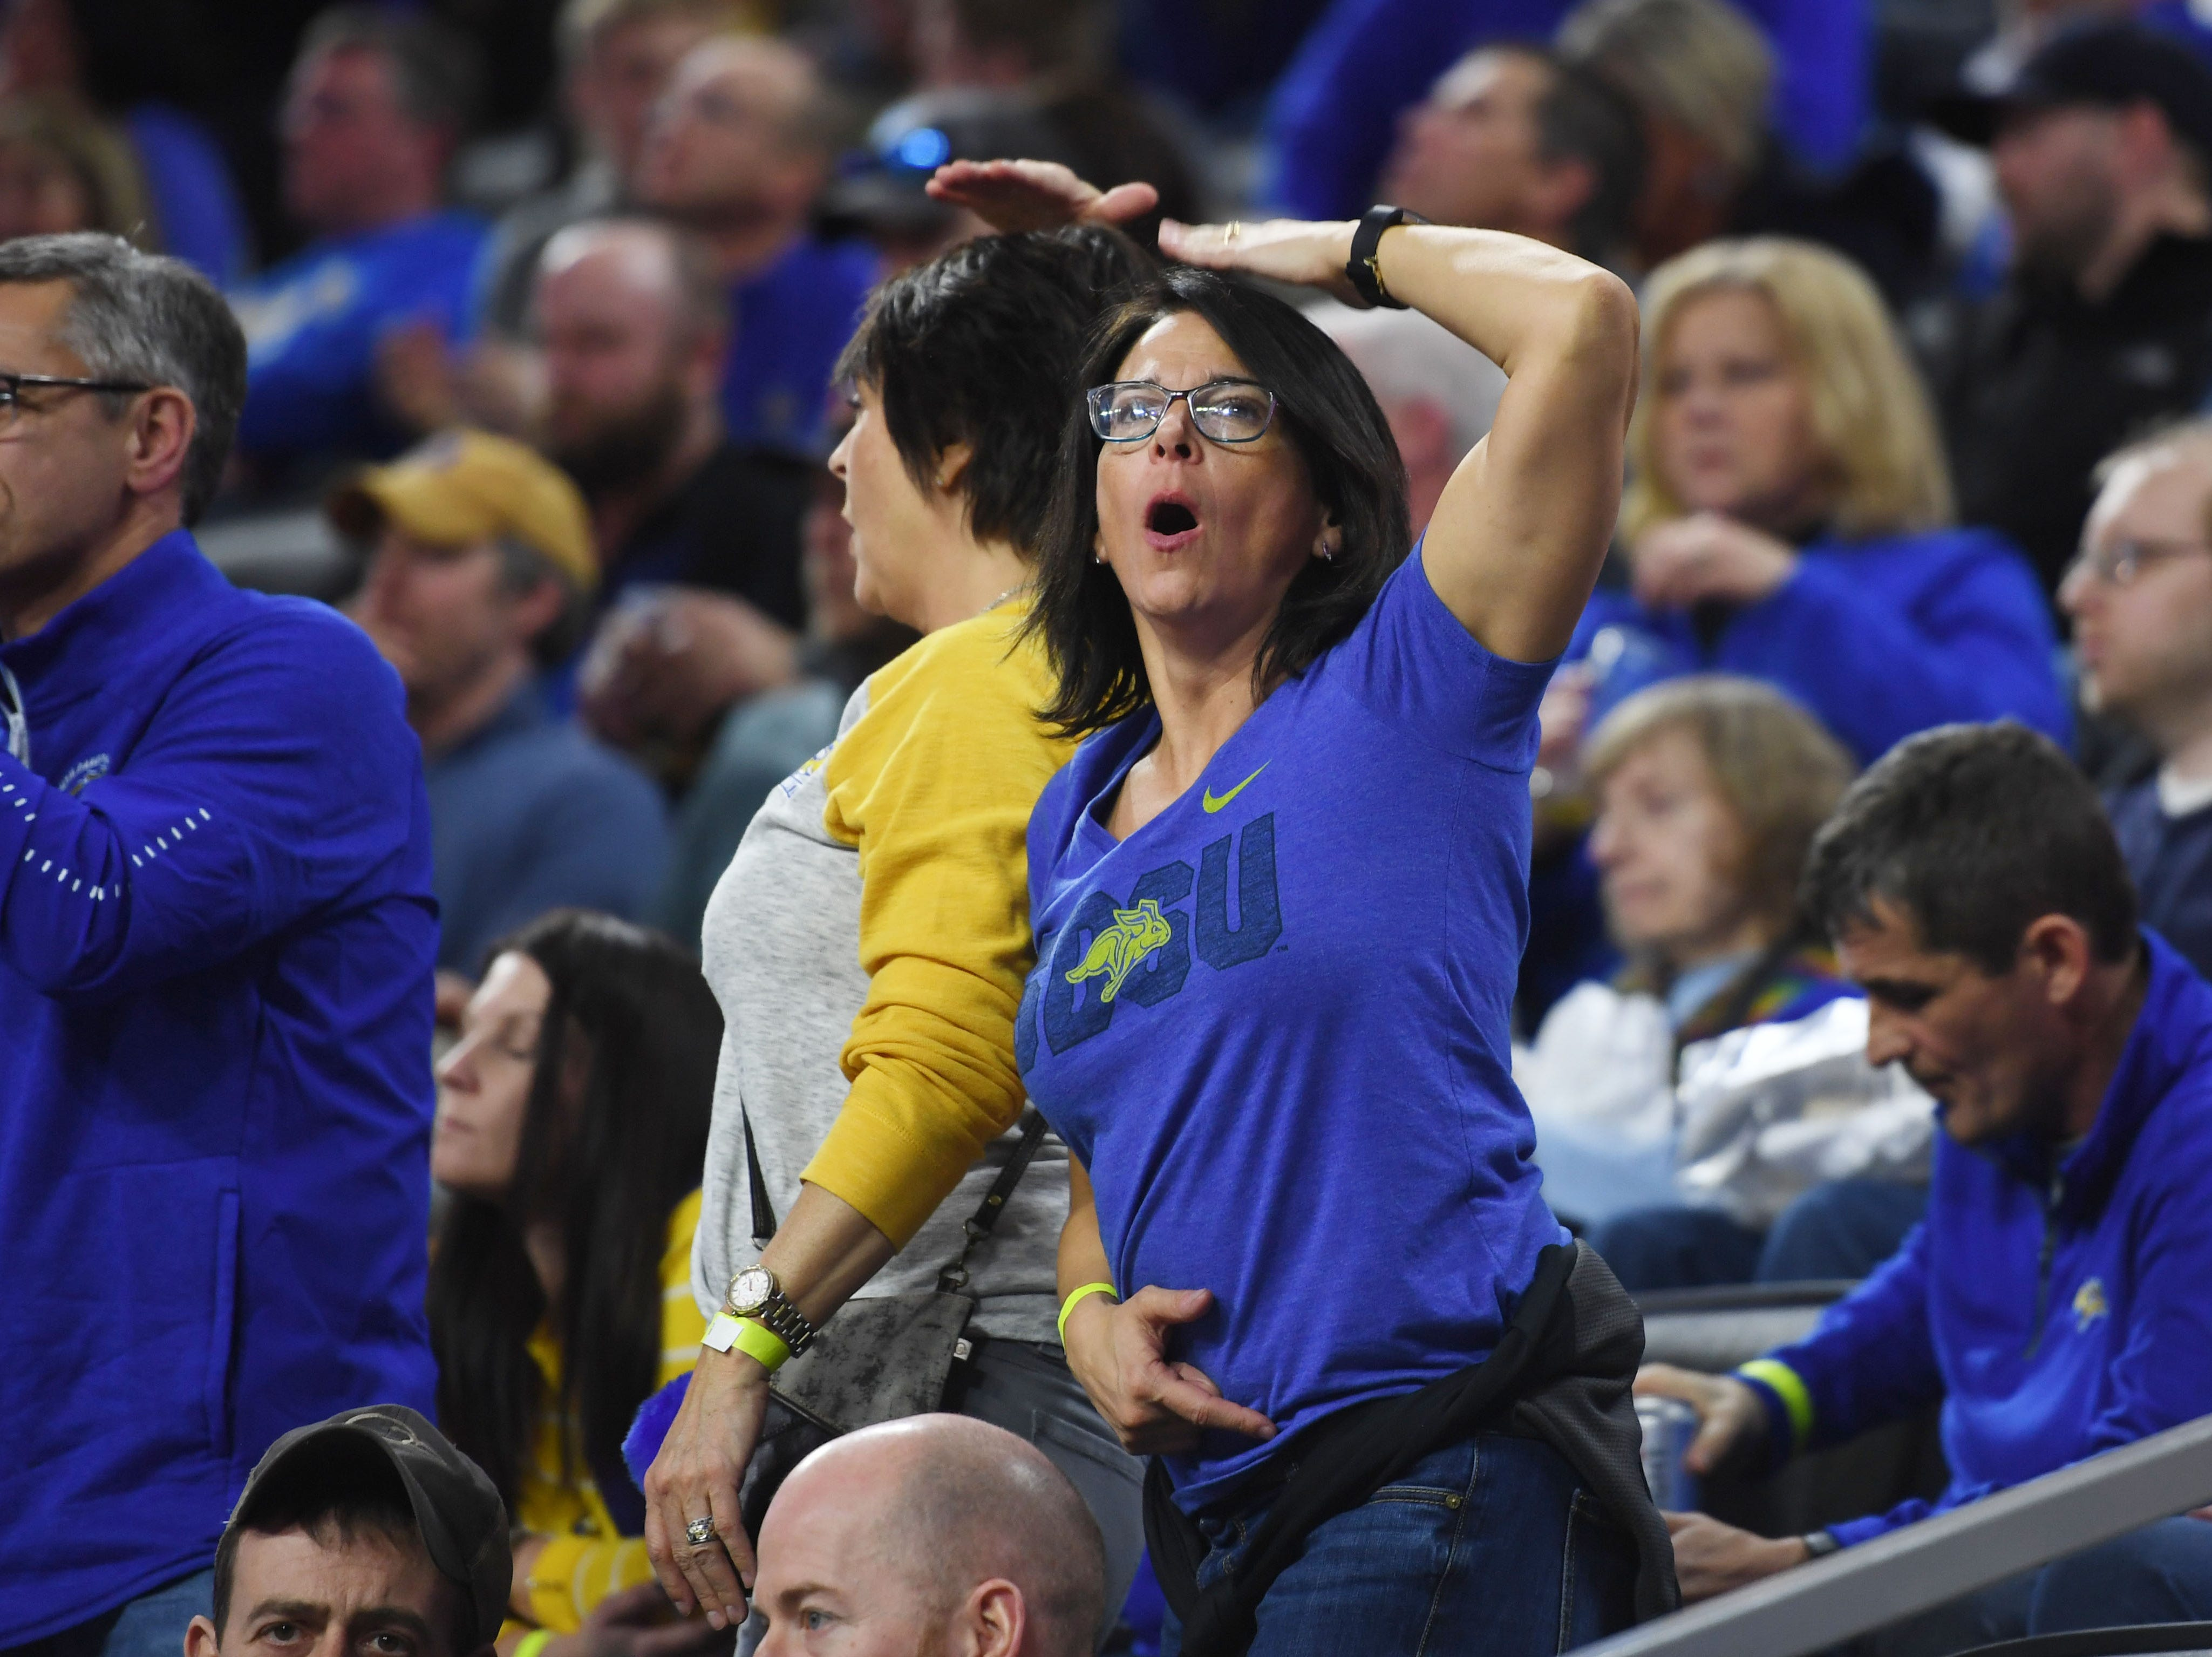 An SDSU fan reacts during the game against Western Illinois Saturday, March 9, in the Summit League tournament at the Denny Sanford Premier Center in Sioux Falls.